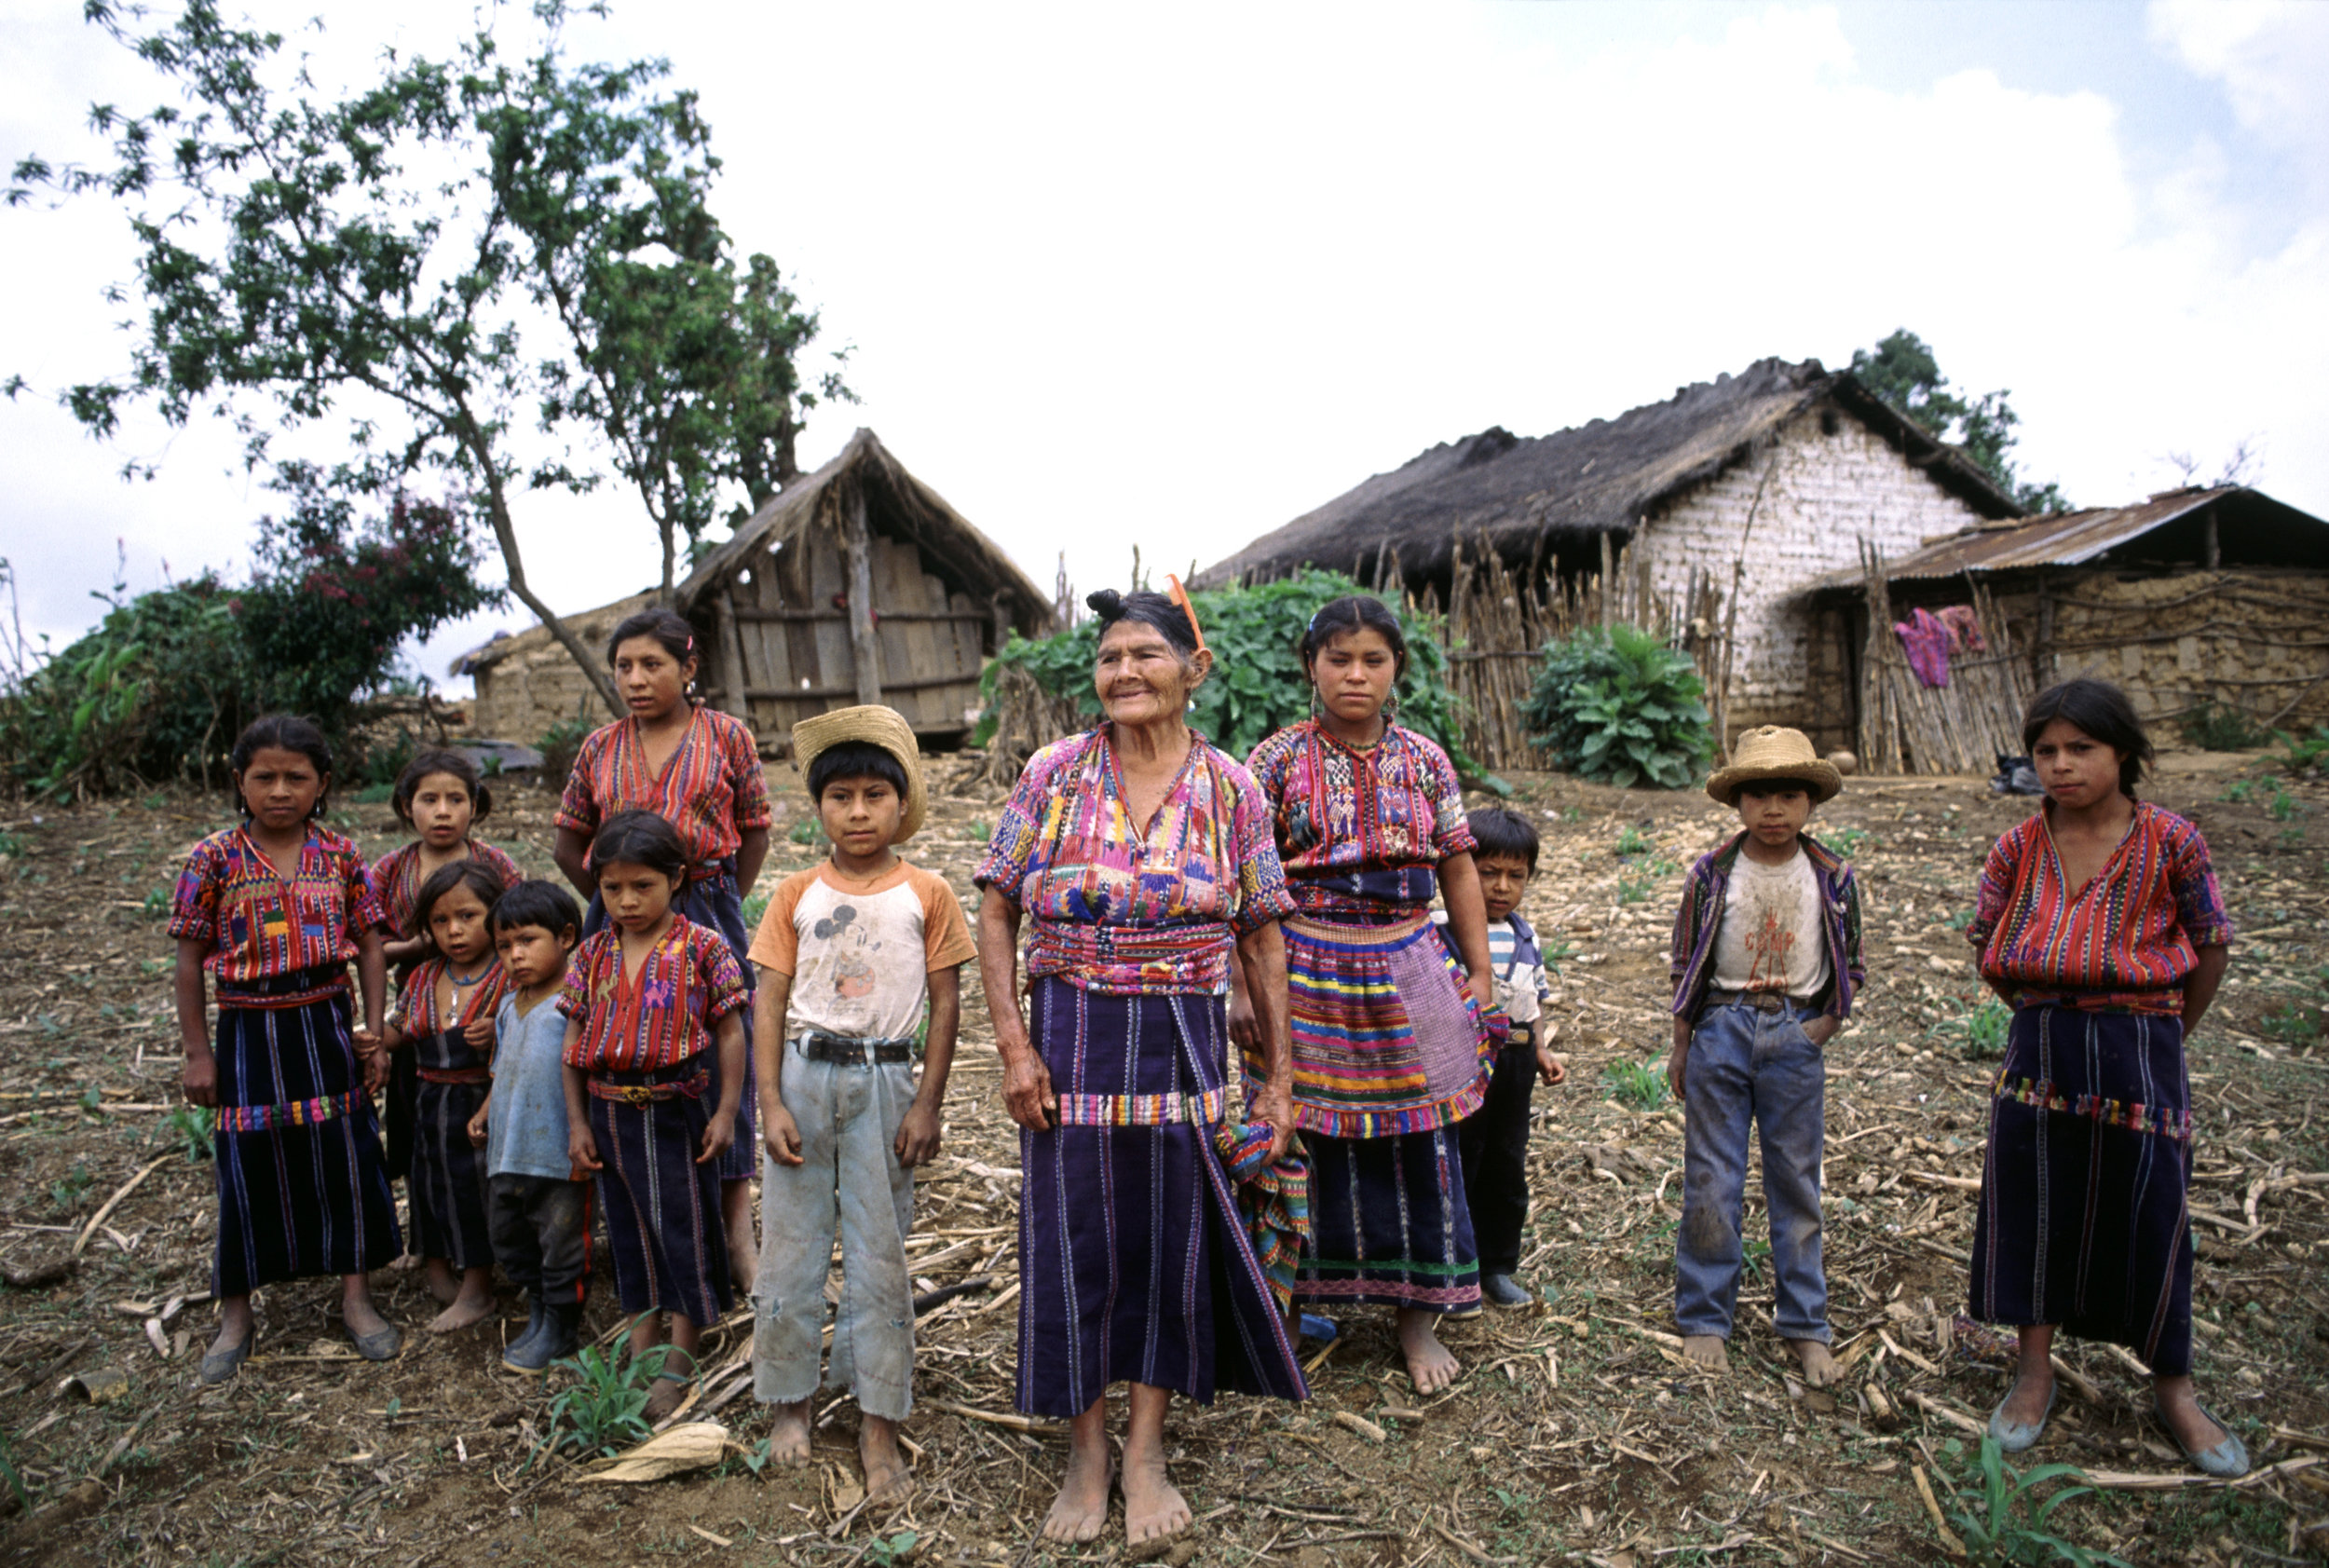 Cakchiquel family of the Guatemalan Western Highlands